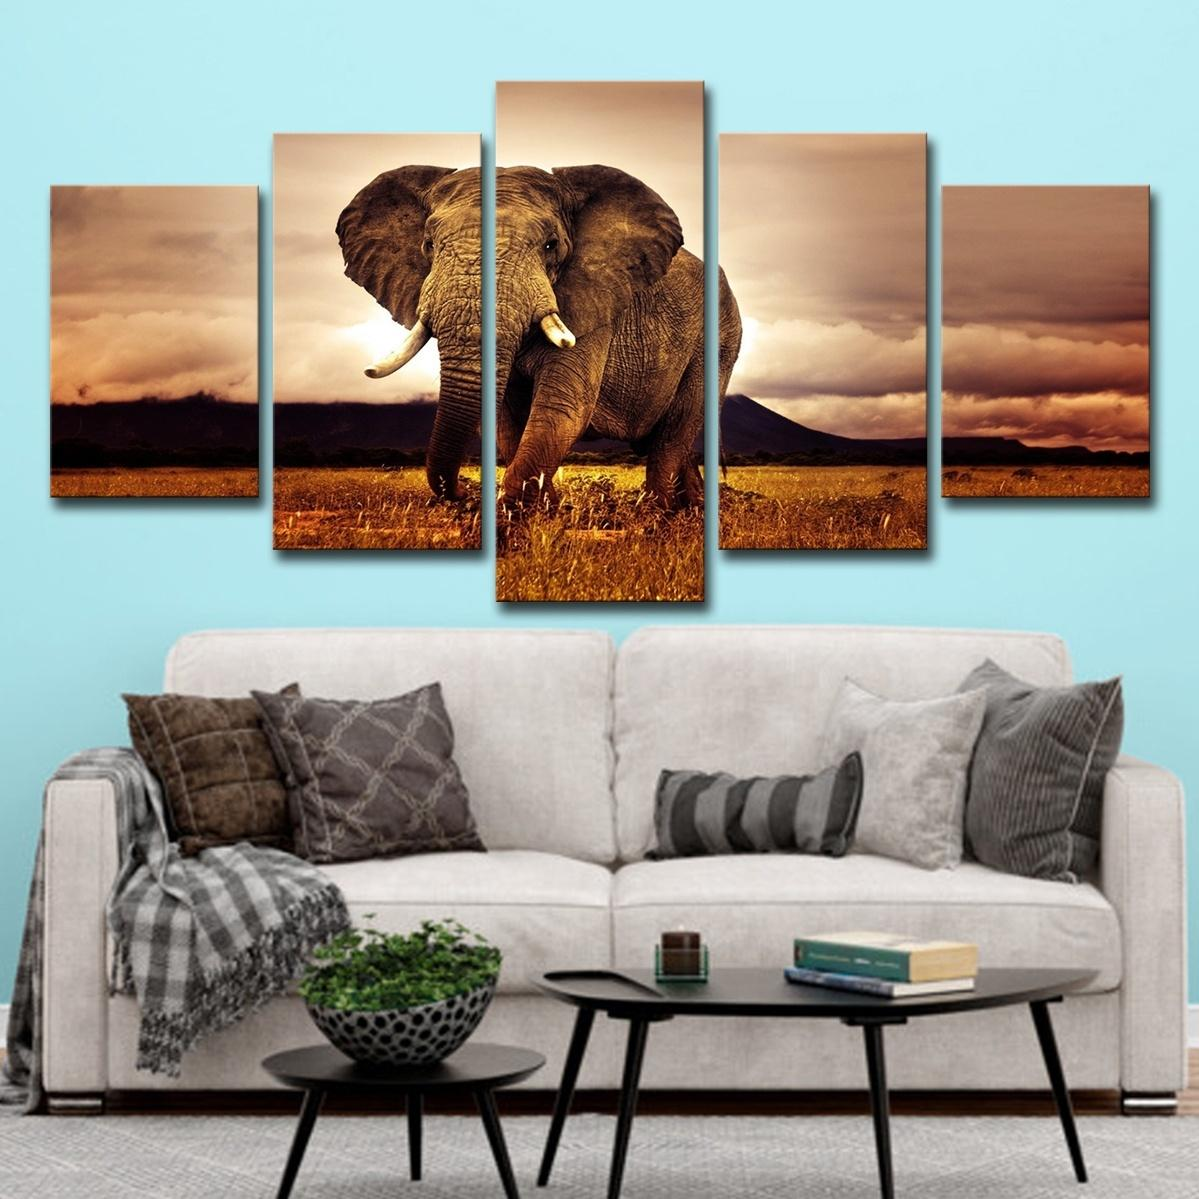 5pcs Animal Elephant Sunset Landscape Paintings Wall Art HD Print Canvas Painting Fashion Hanging Pictures